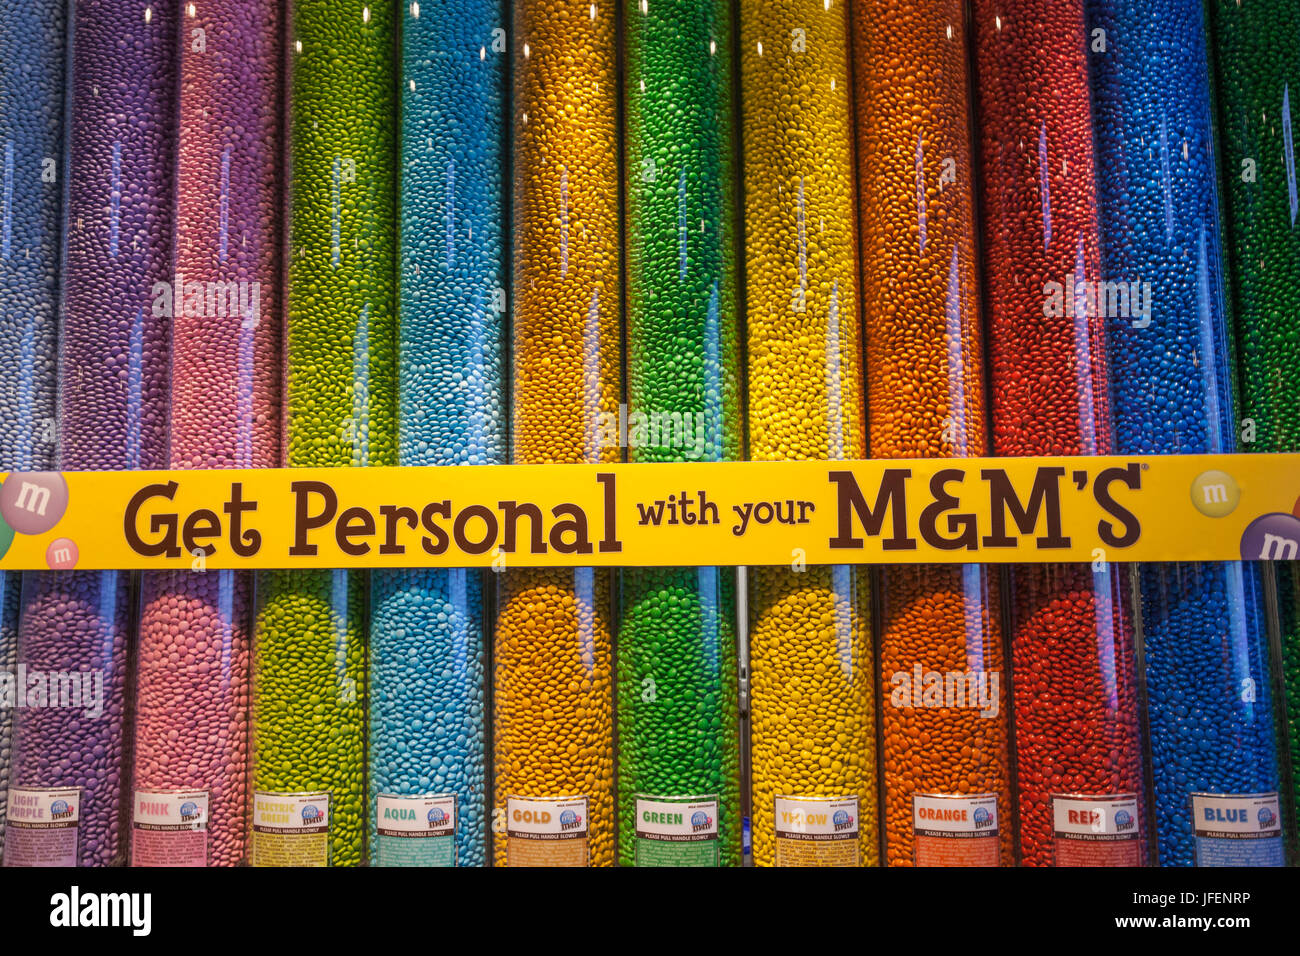 England, London, Leicester Square, M&M's Store - Stock Image